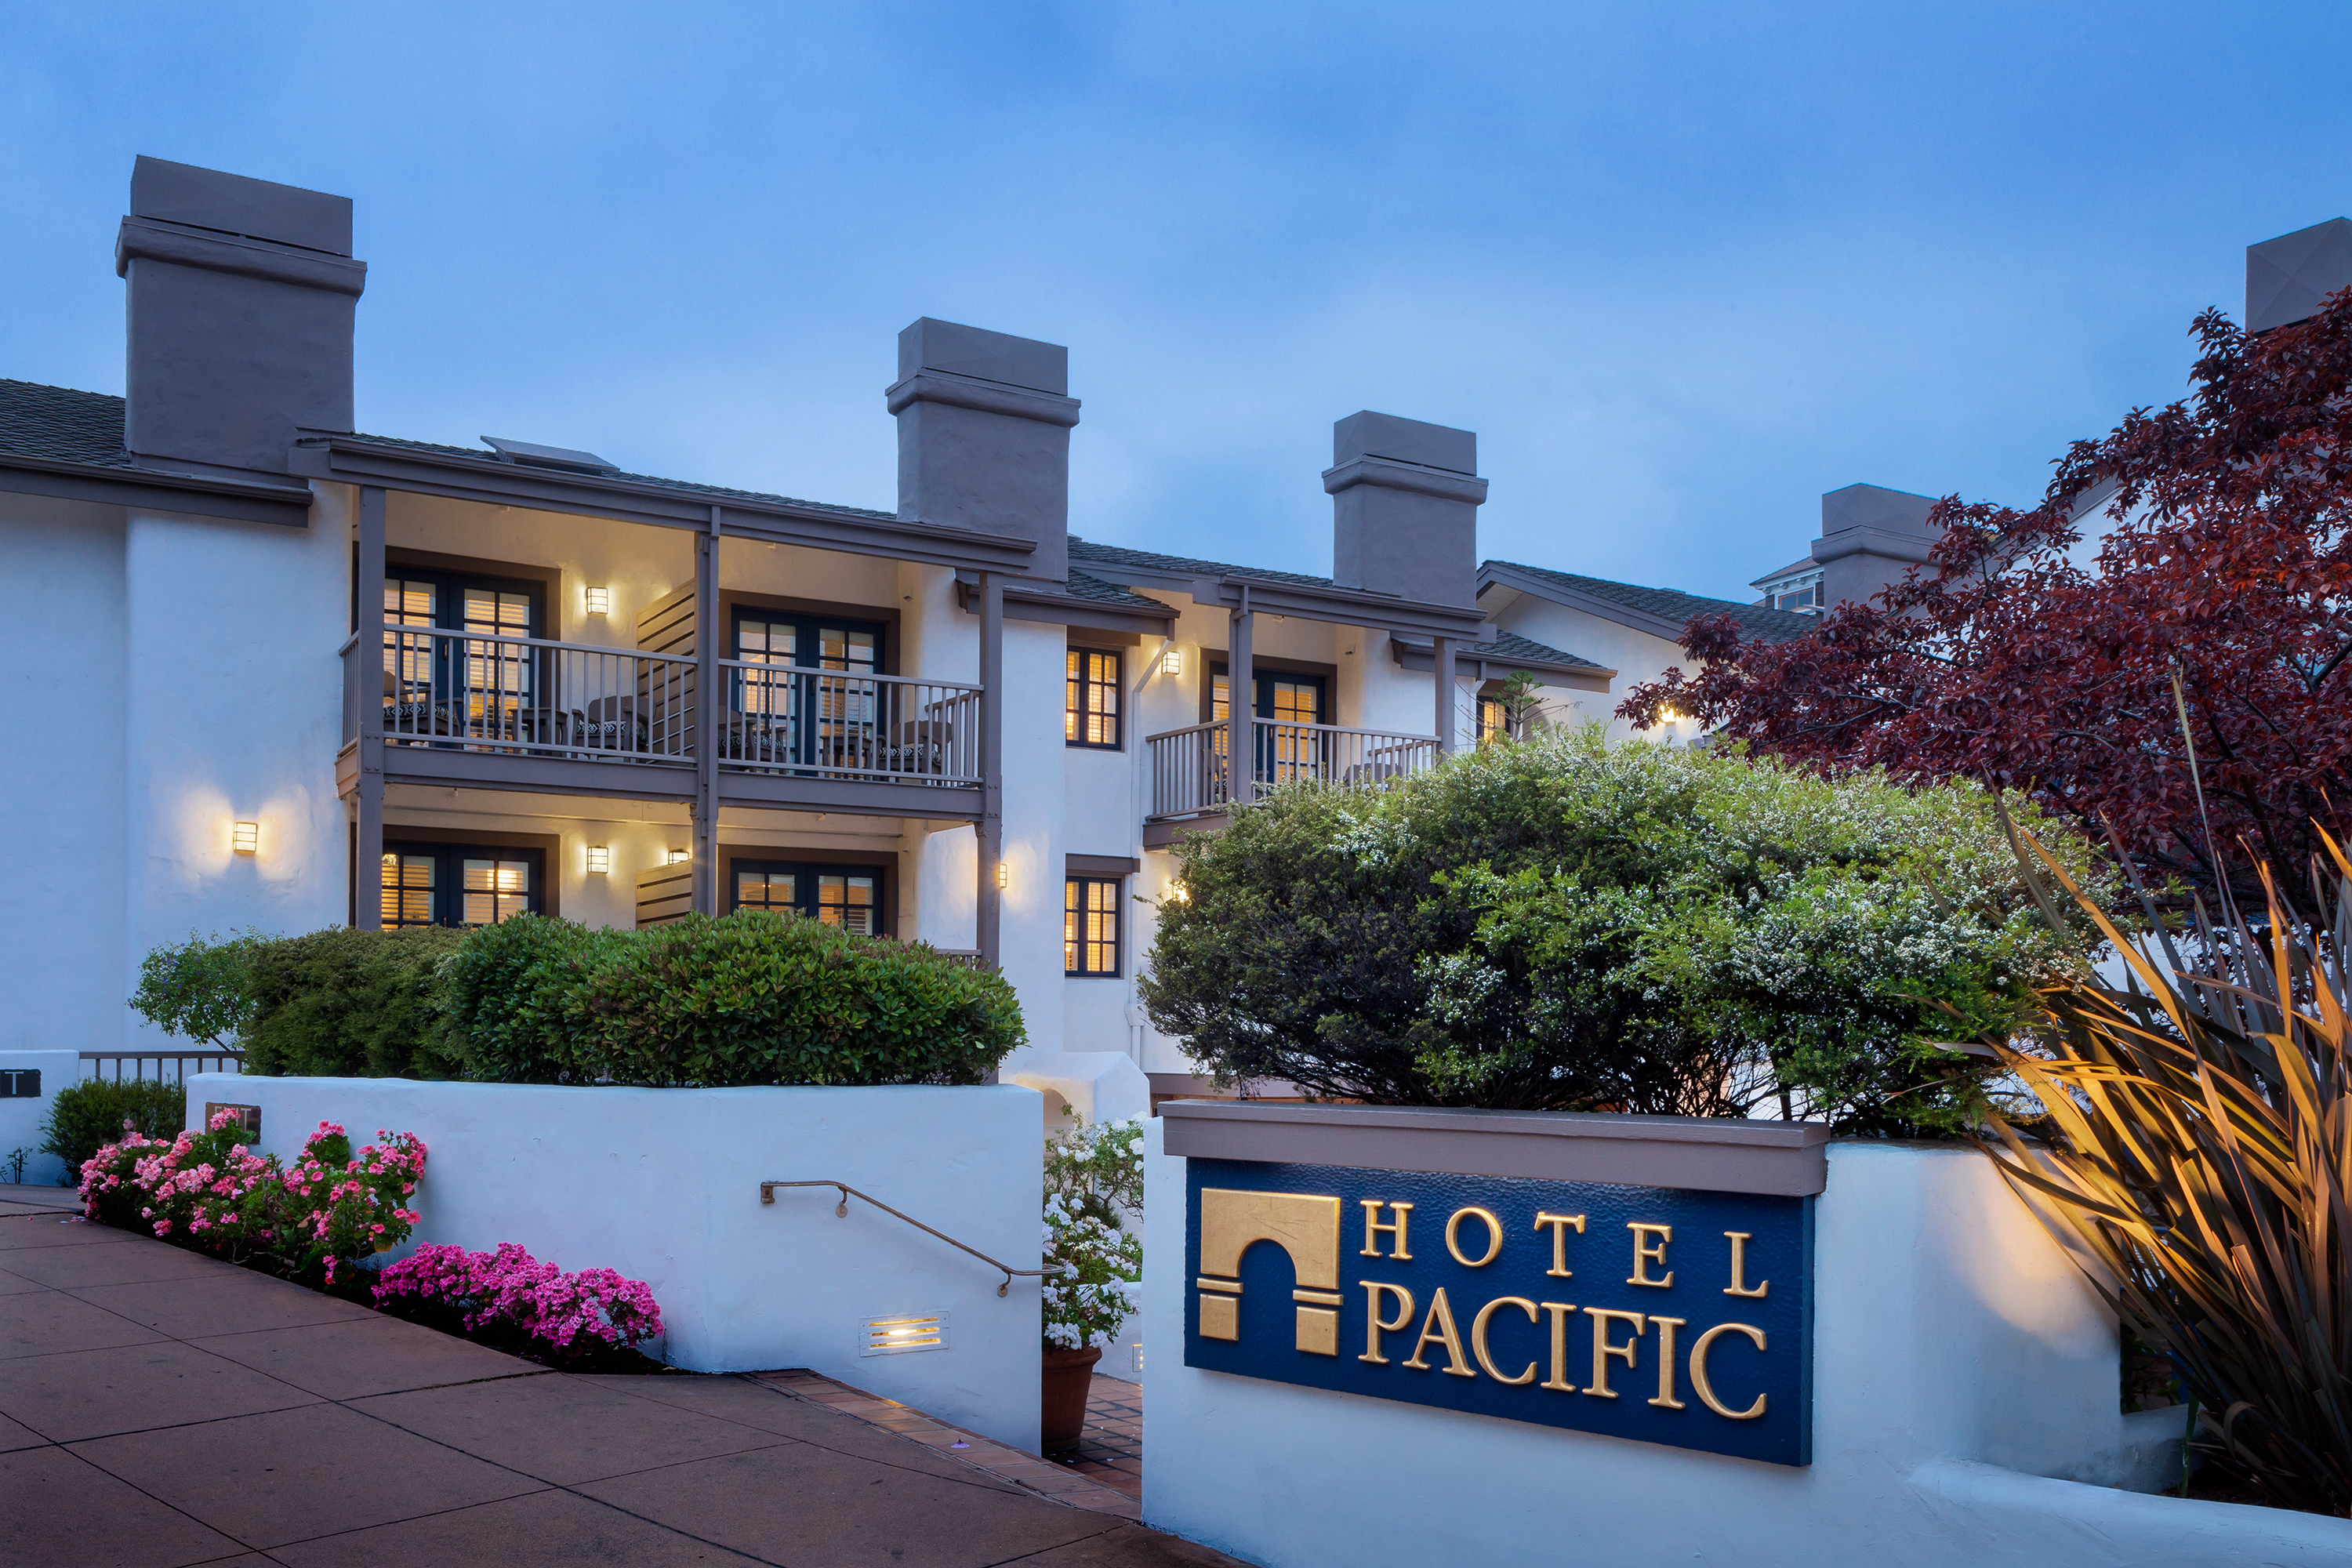 hotel pacific rh seemonterey com hotels in carmel ca on the beach hotels in carmel ca on ocean ave